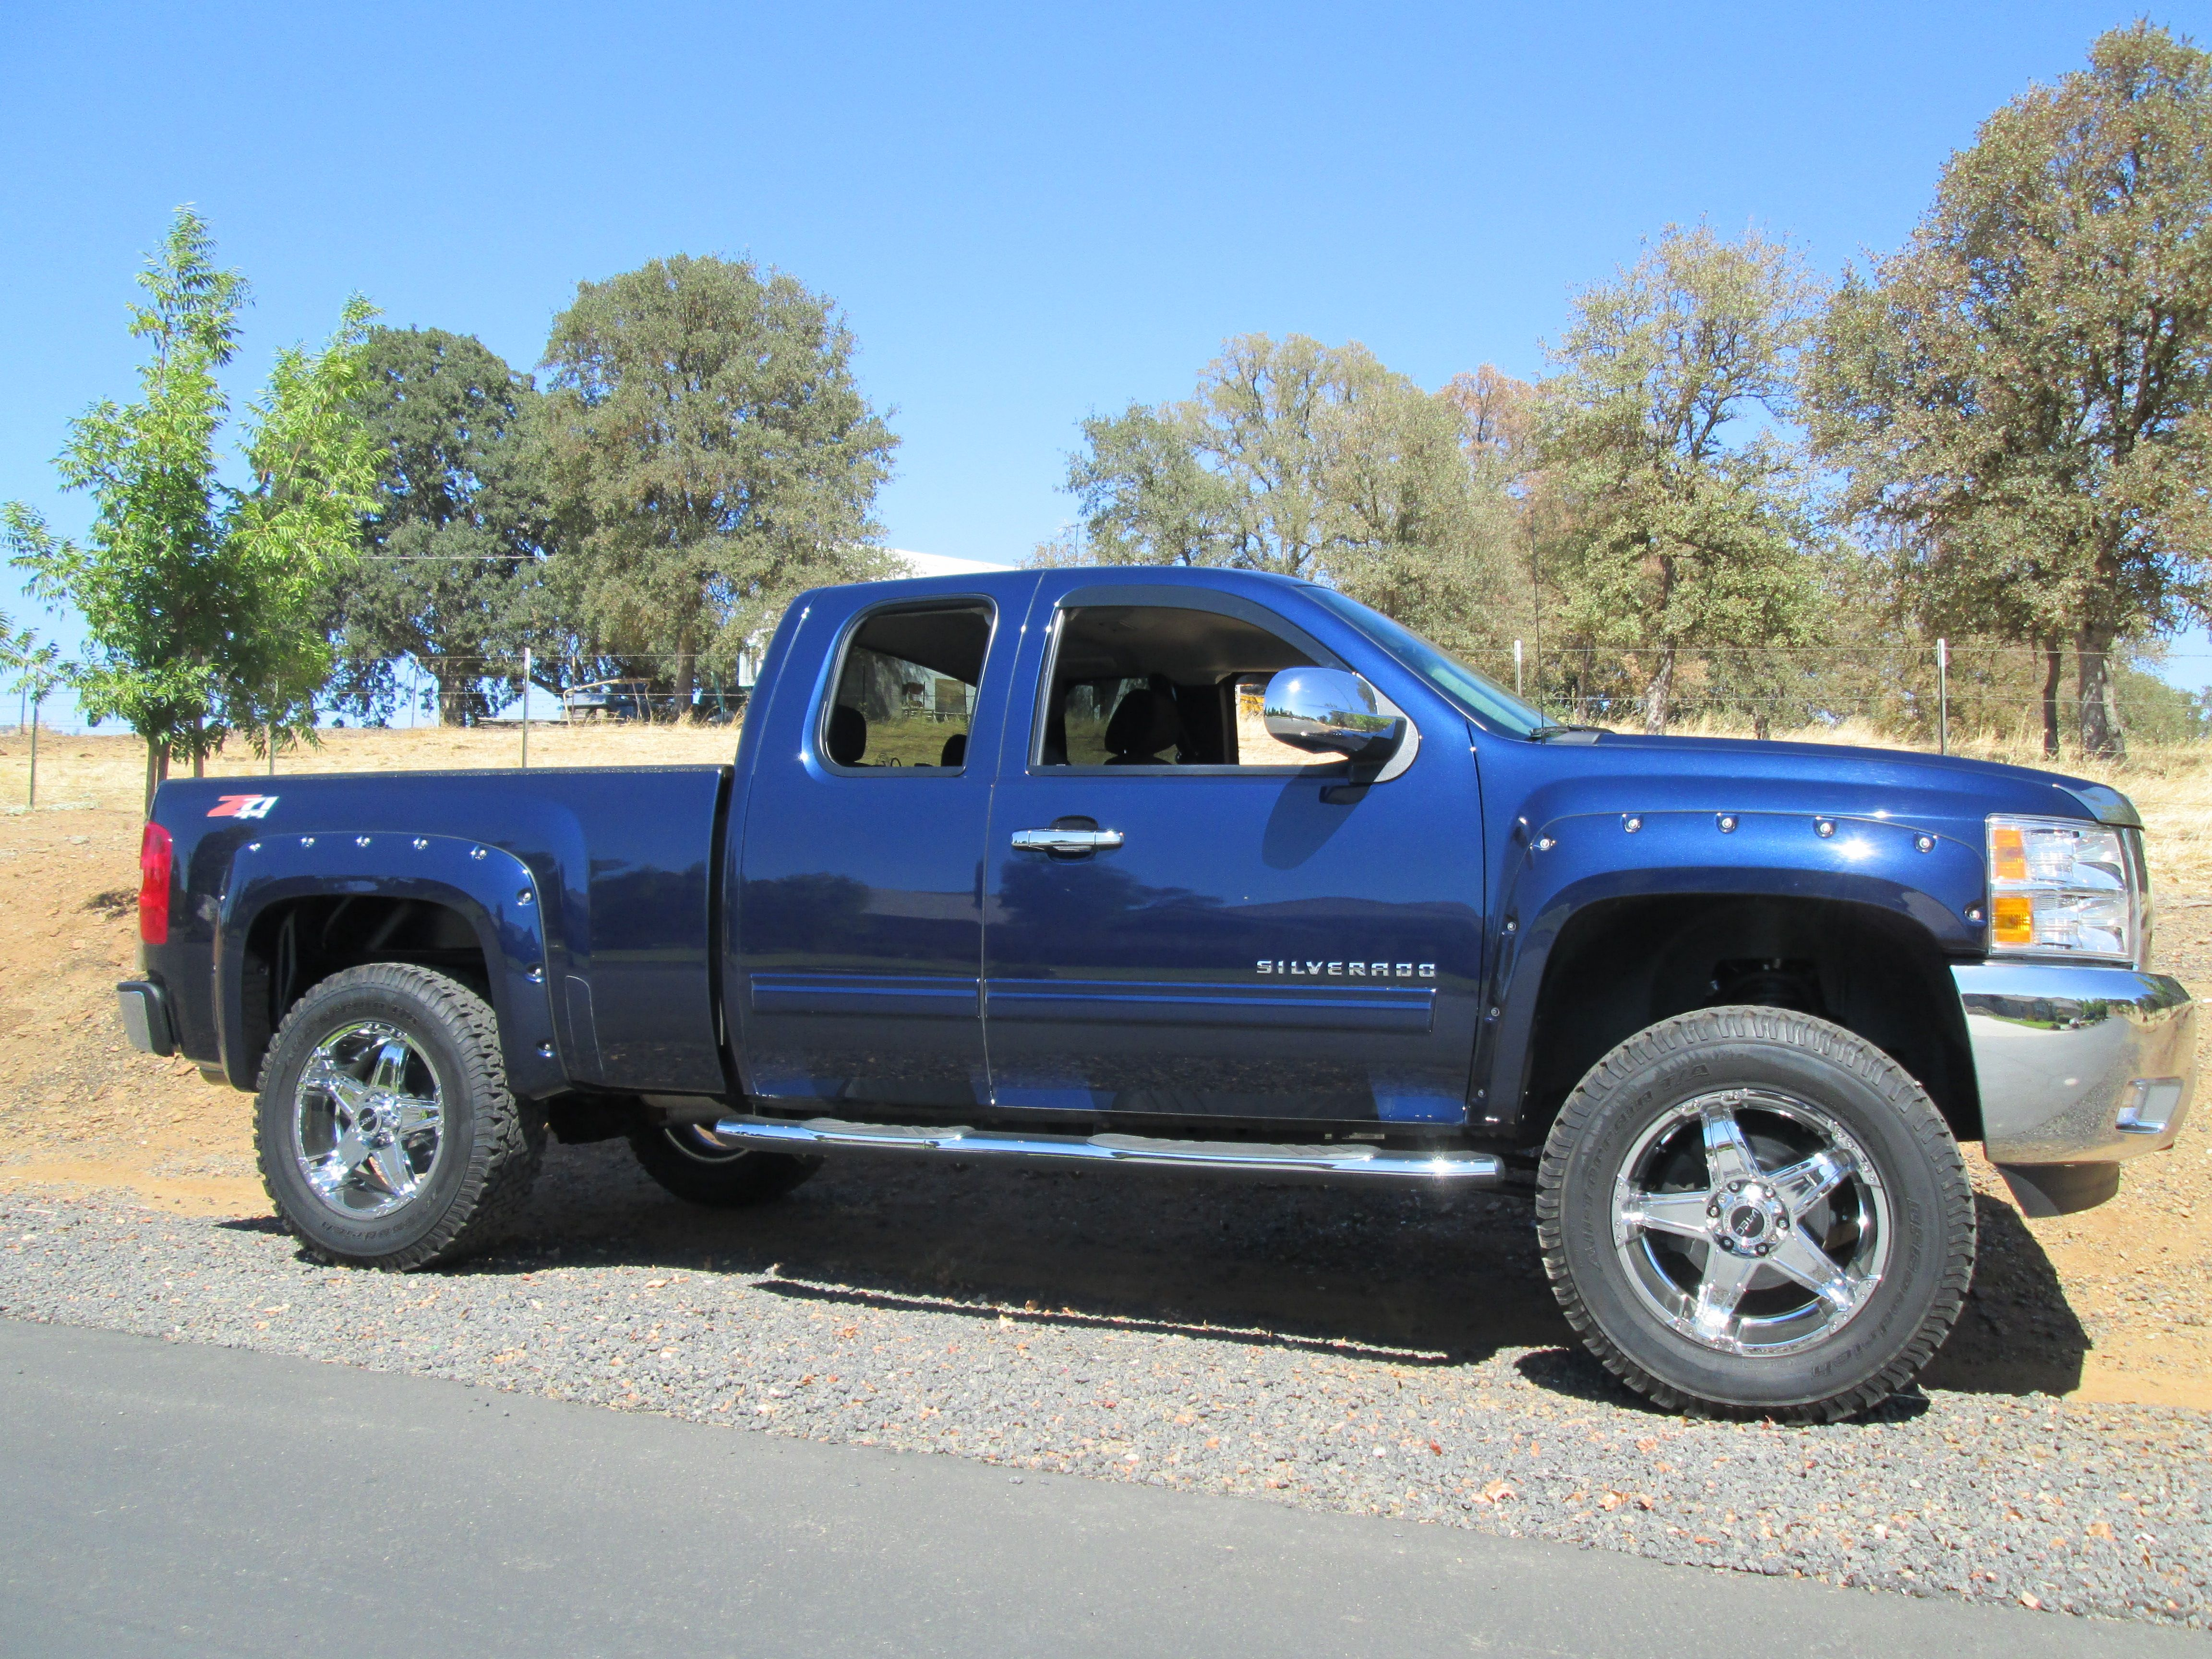 2012 Chevy Silverado 1500 Rocky Ridge 4 Inch Lift Kit And Custom Body Styling This Is My Baby